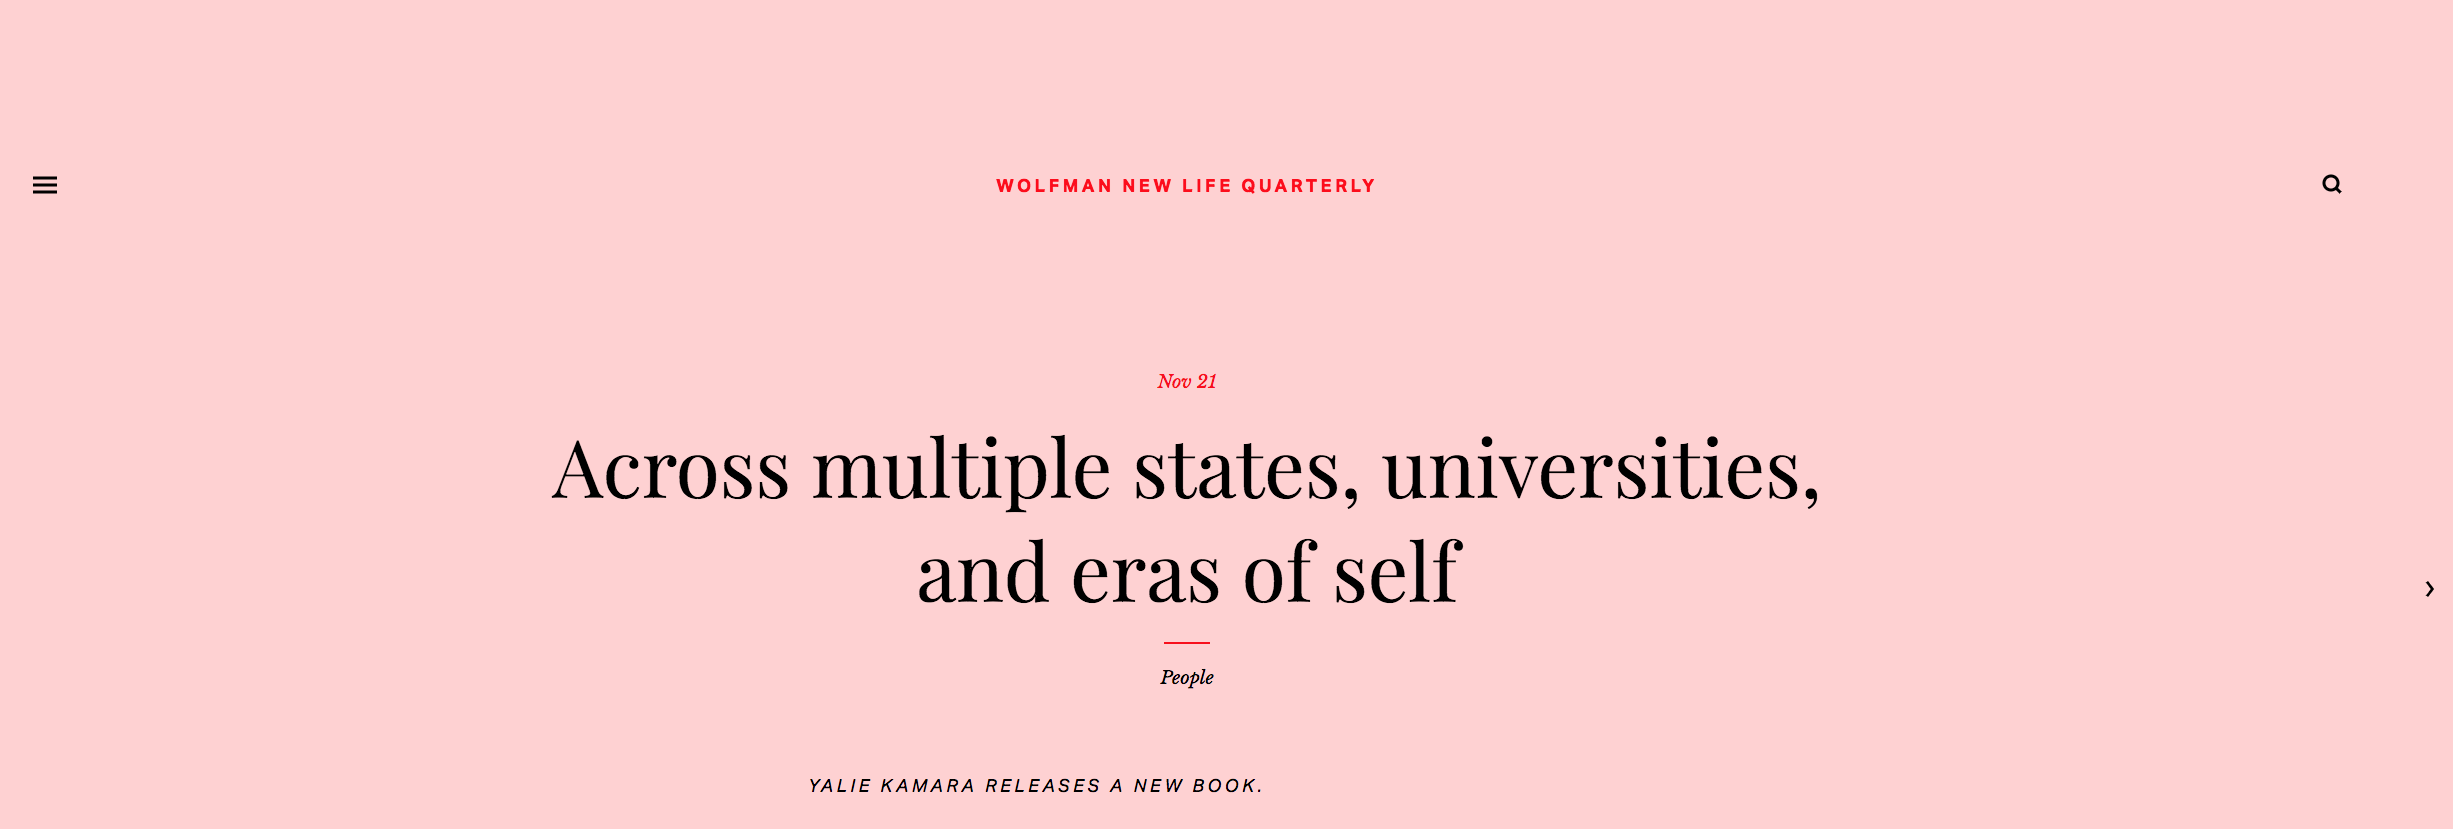 - Across Multiple States, Universities, and Eras of Self, The New Life Quarterly, November 21, 2017